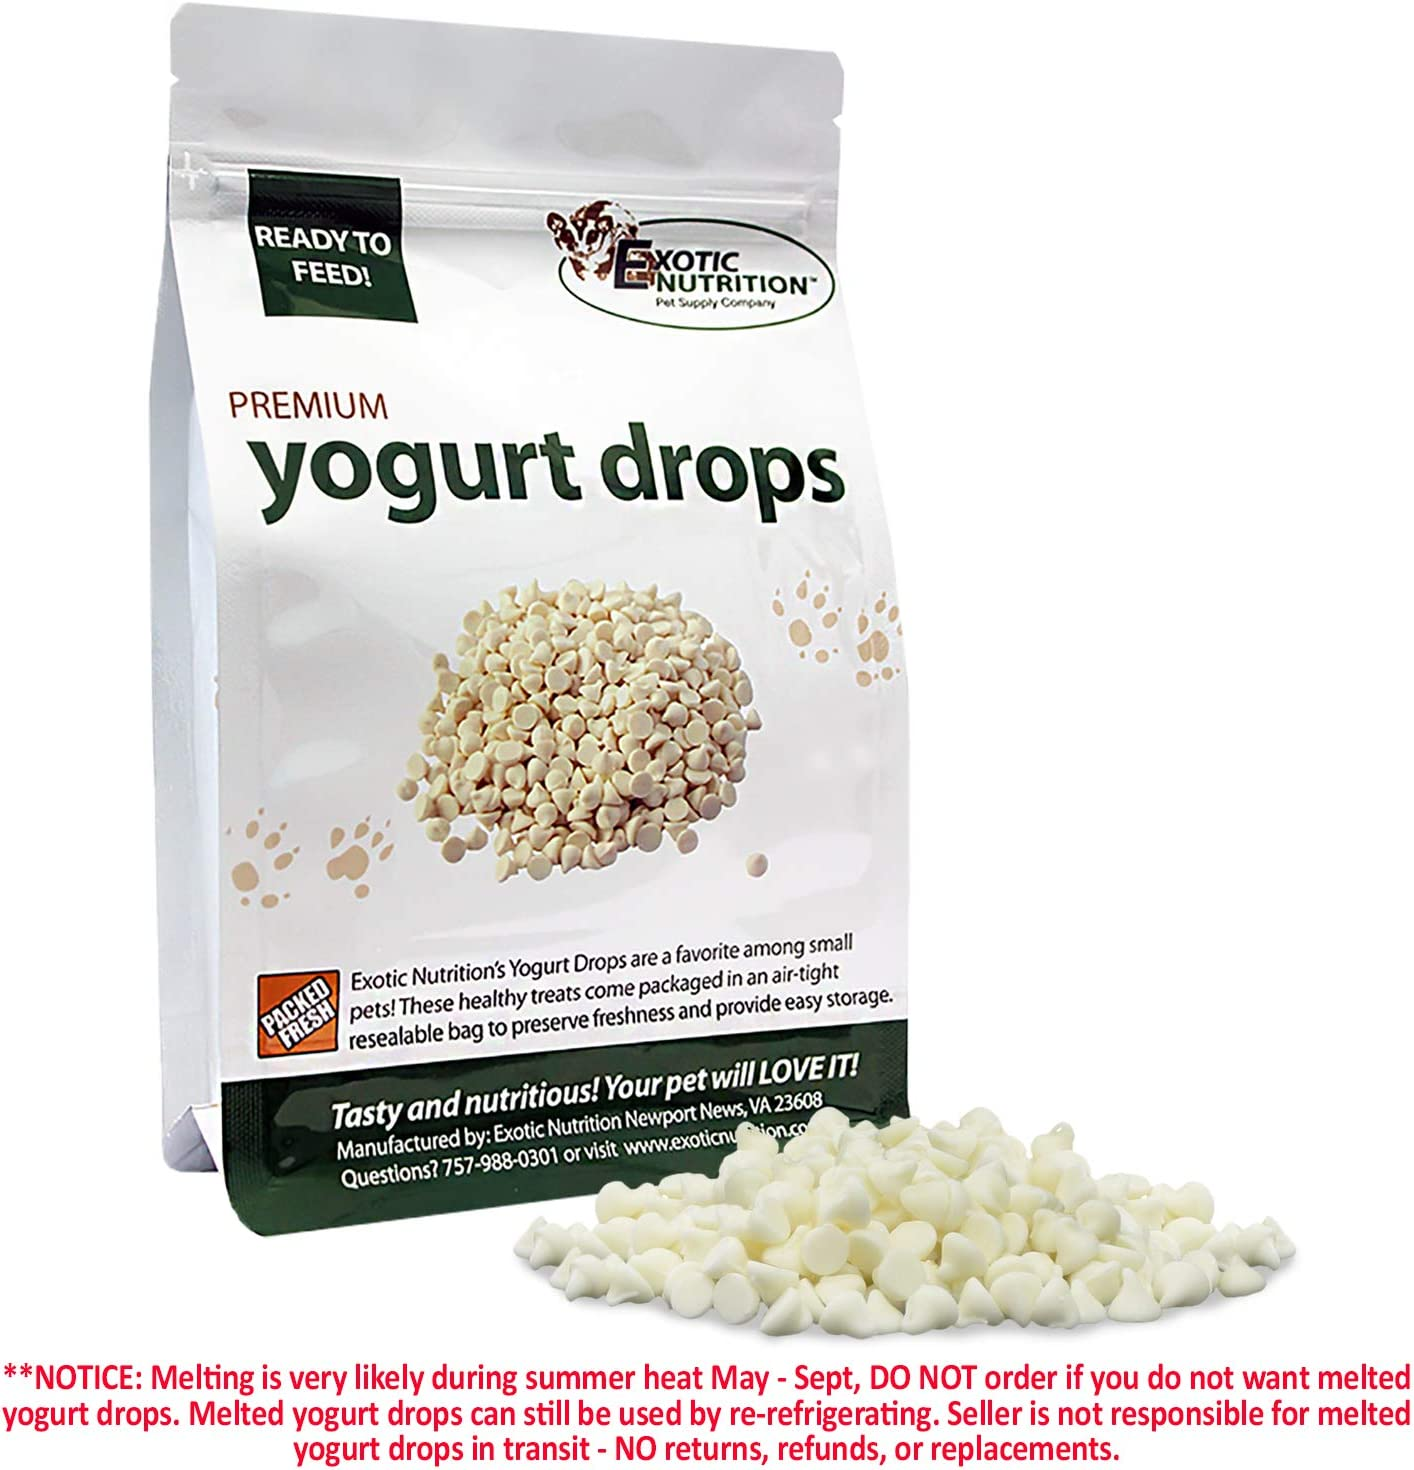 Exotic Nutrition Yogurt Drops – All Natural Healthy Yogurt Treat – for Sugar Gliders, Prairie Dogs, Monkeys, Squirrels, Guinea Pigs, Rabbits, Chinchillas, Rats, Marmosets, Degus Other Small Pets